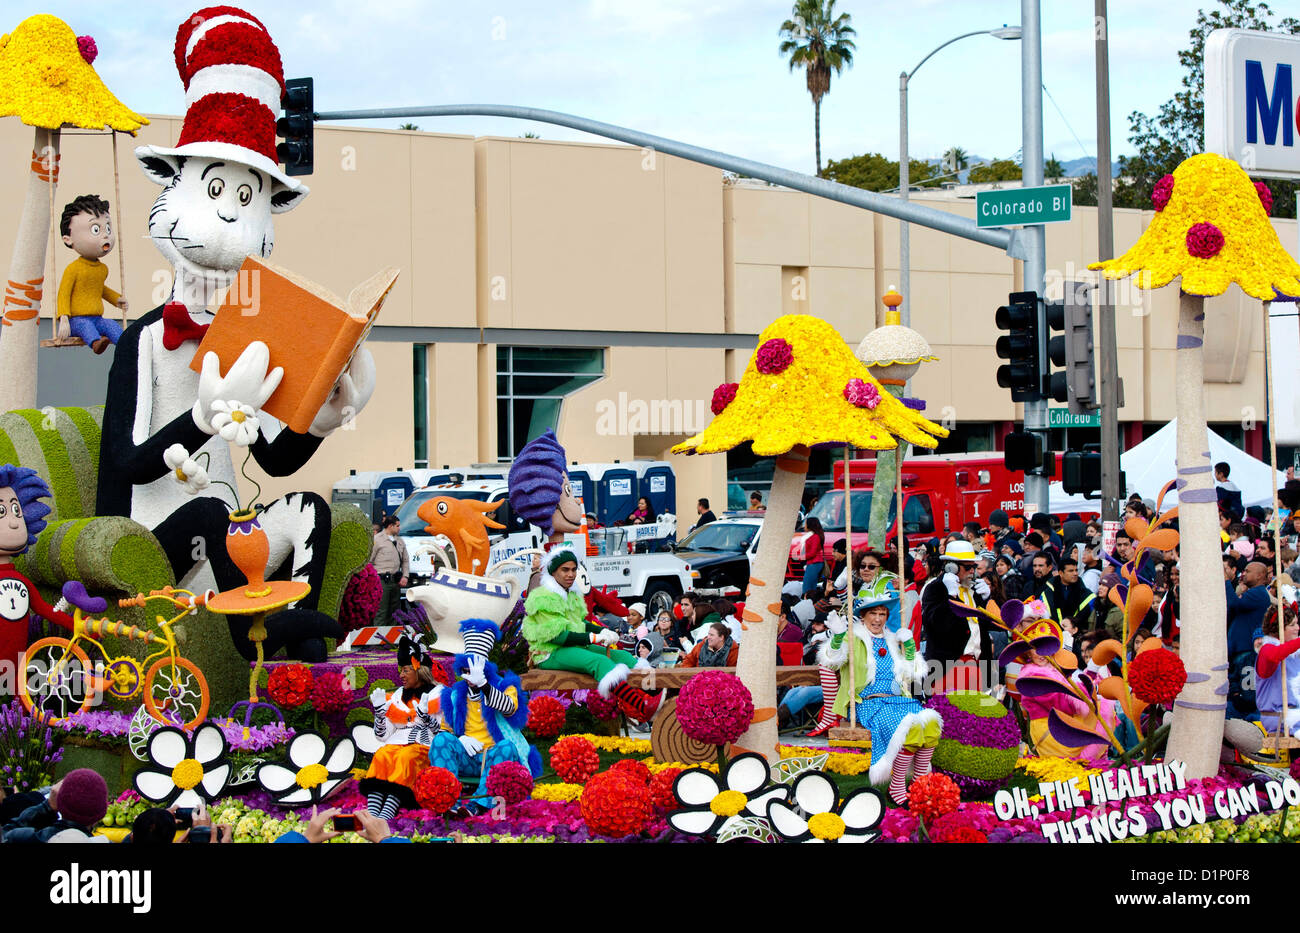 The Kaiser Permanente float 'Oh, The Healthy Things You Can Do,' winner of the Theme trophy for the best - Stock Image